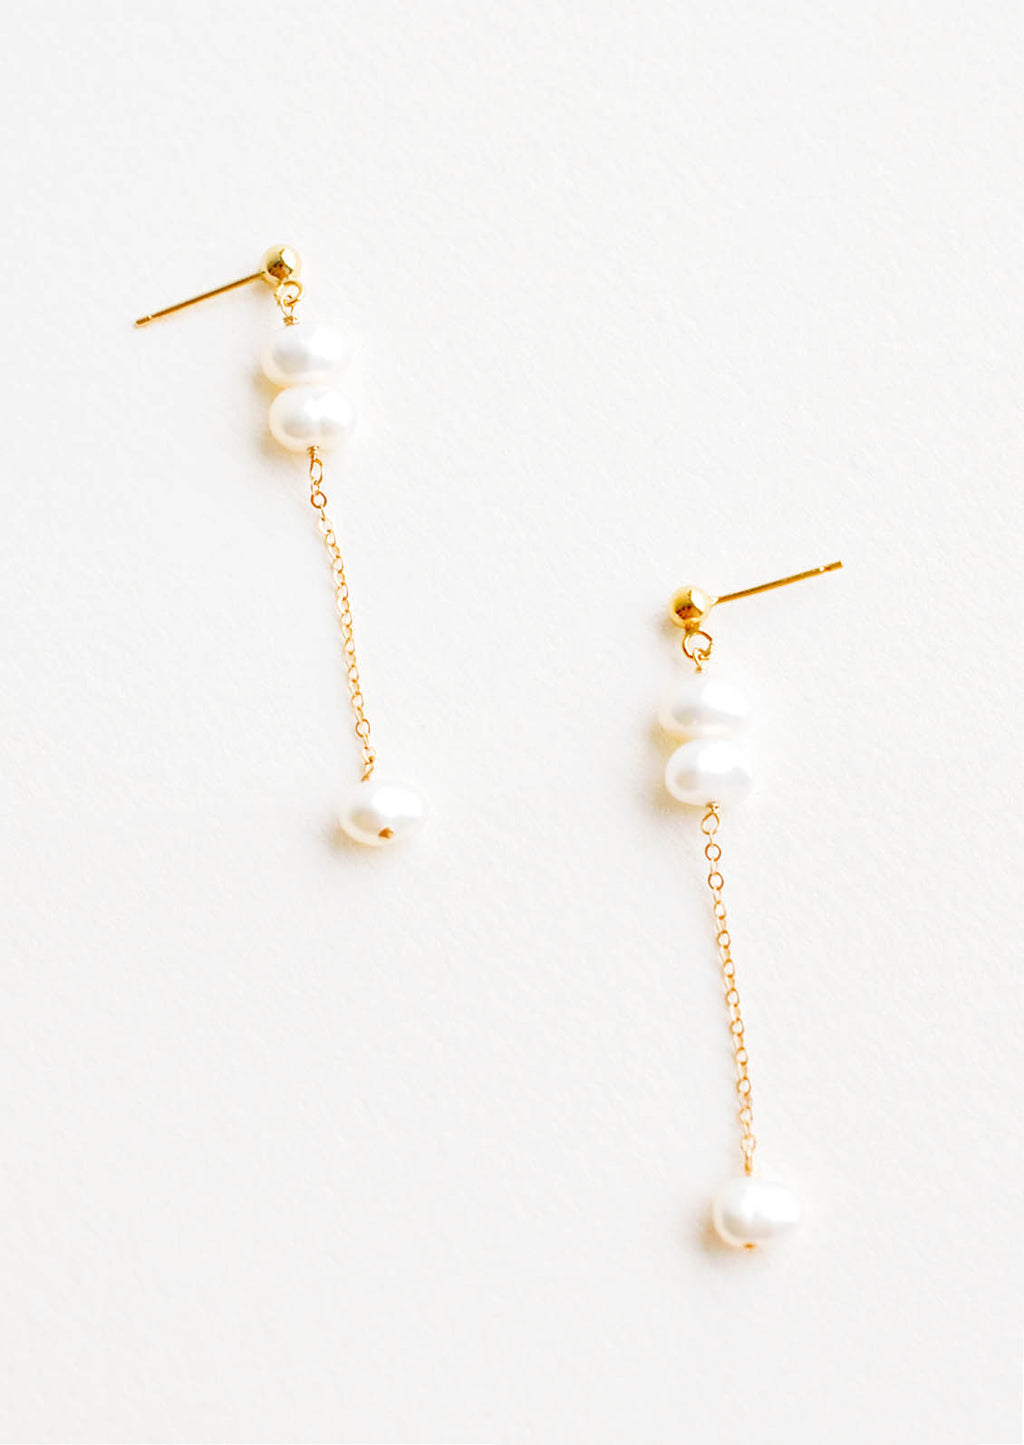 1: A pair of gold earrings with three pearls dangling from a post, and the third pearl is hanging from a fine gold chain.